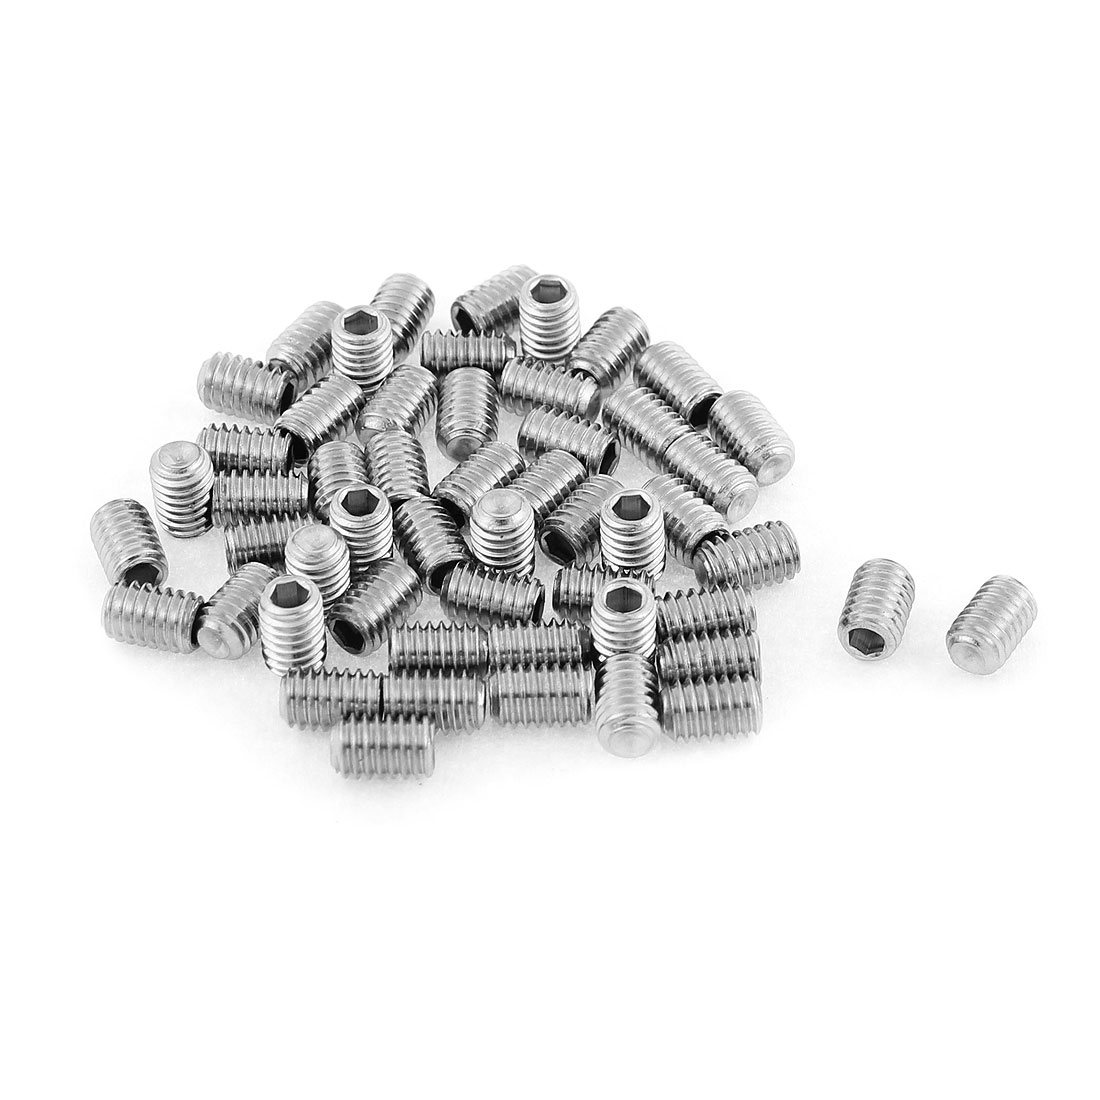 M4x6mm Stainless Steel Hex Socket Set Cap Point Grub Screws Silver Tone 50pcs